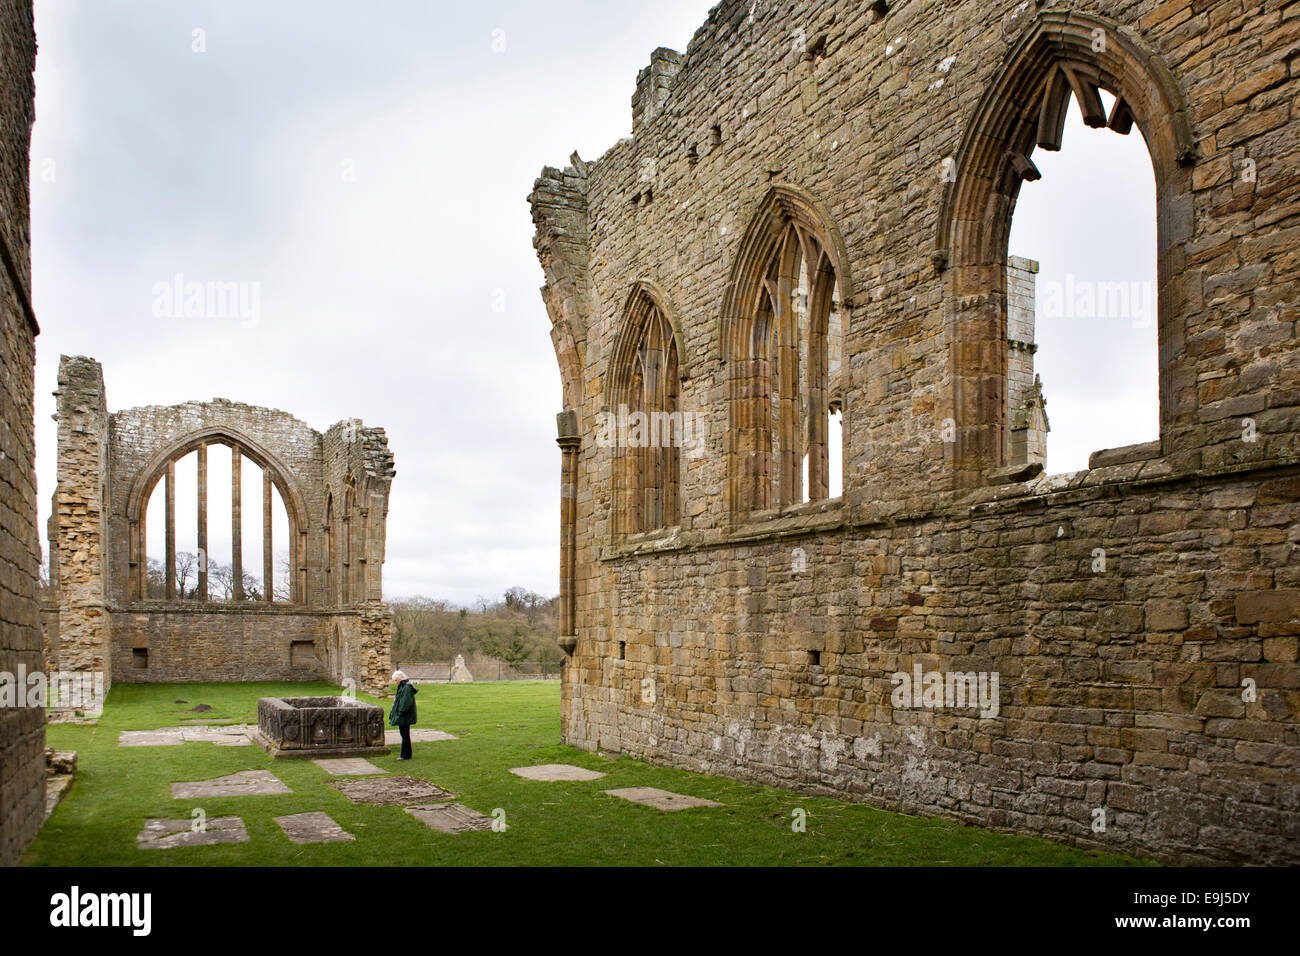 UK, Country Durham, Barnard Castle, Eggleston Abbey, visitor in ruins of 13th century church - Stock Image